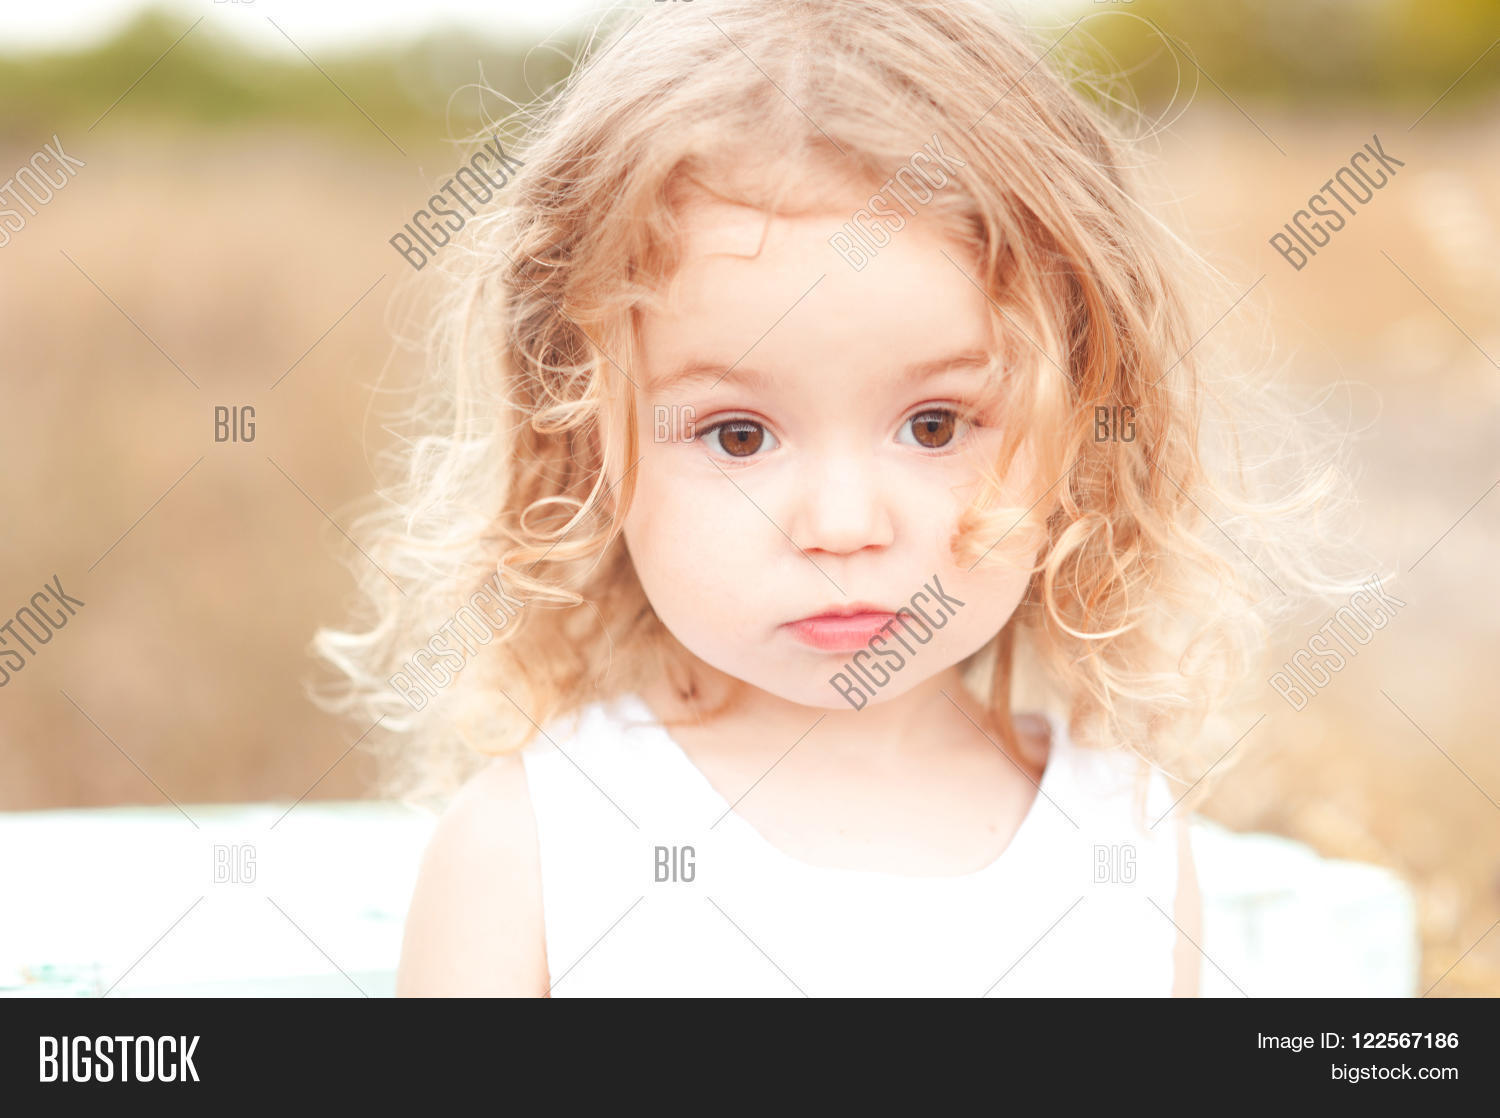 2 Year Old Little Girl Hairstyles Hairstyles